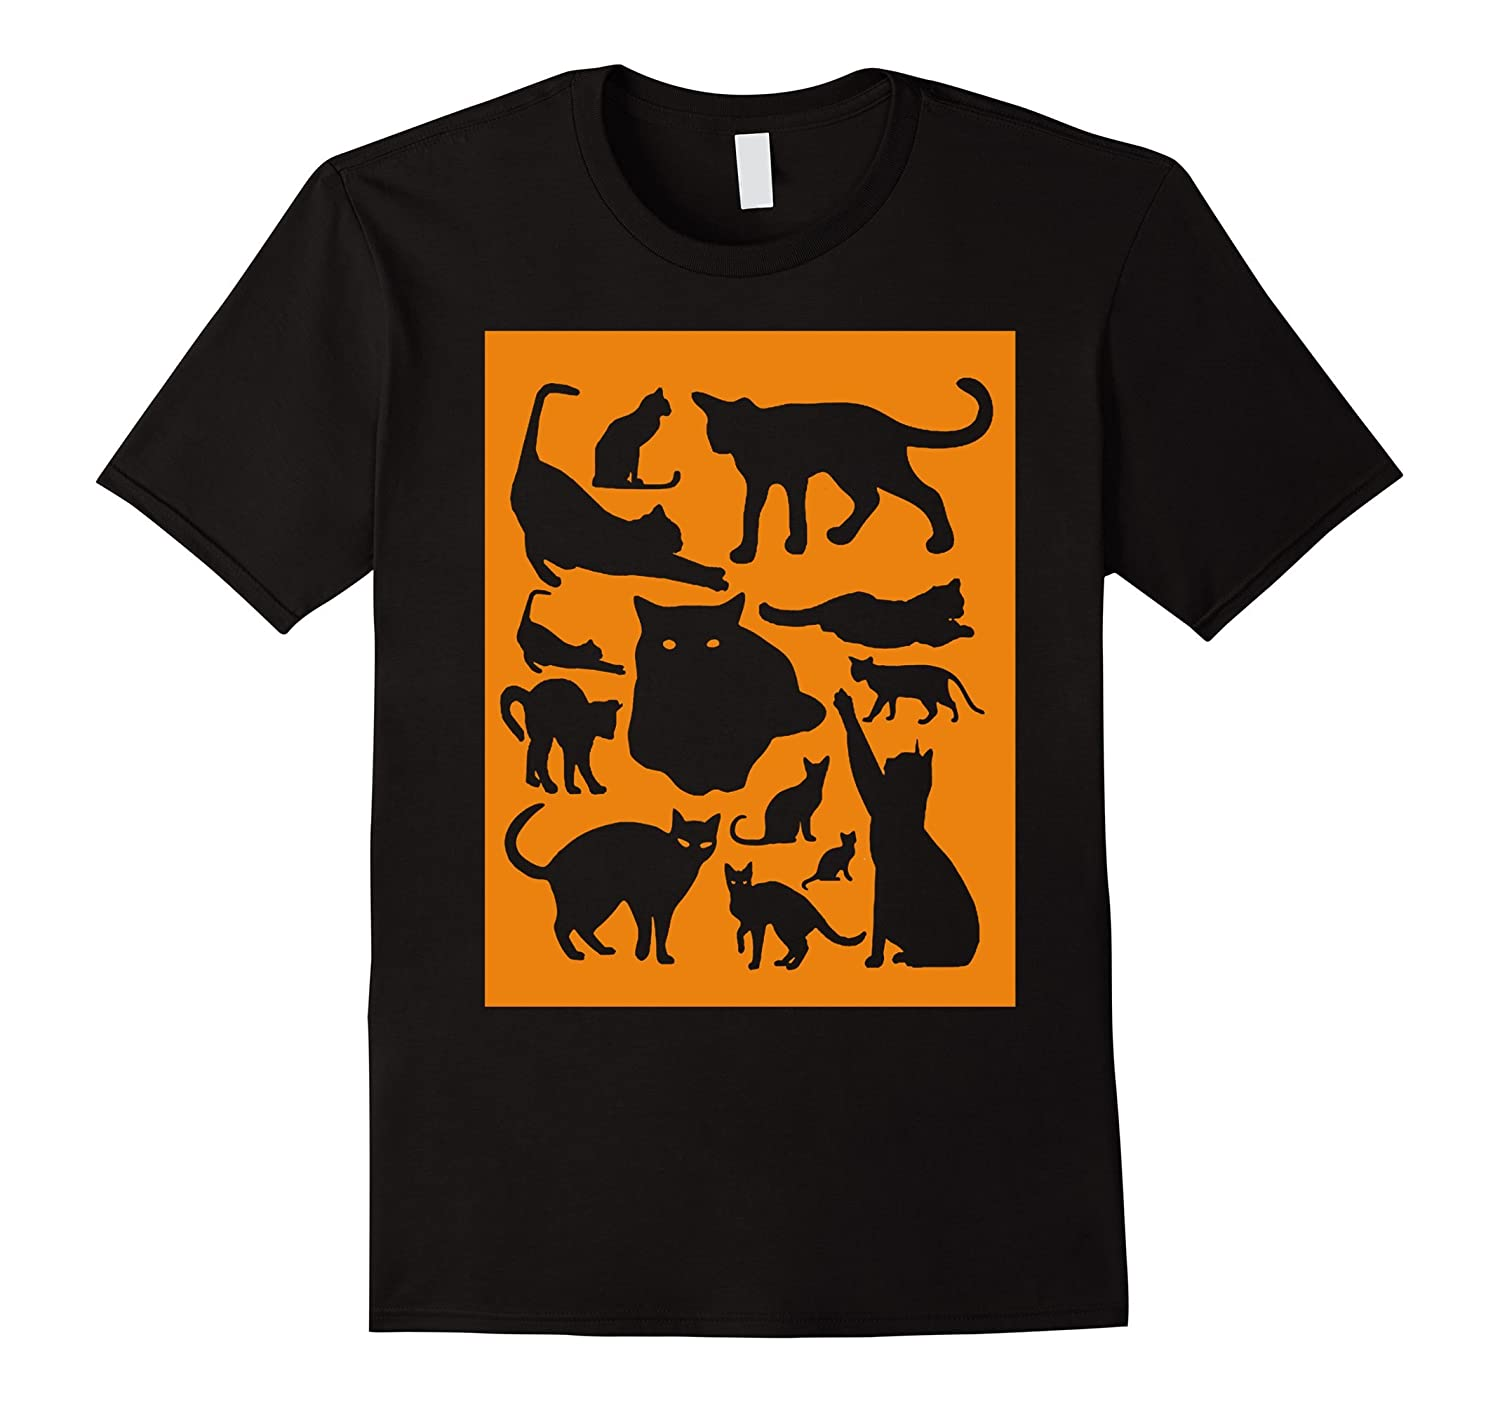 13 Black Cats Silhouettes on Orange for Cat Lovers B112-CL